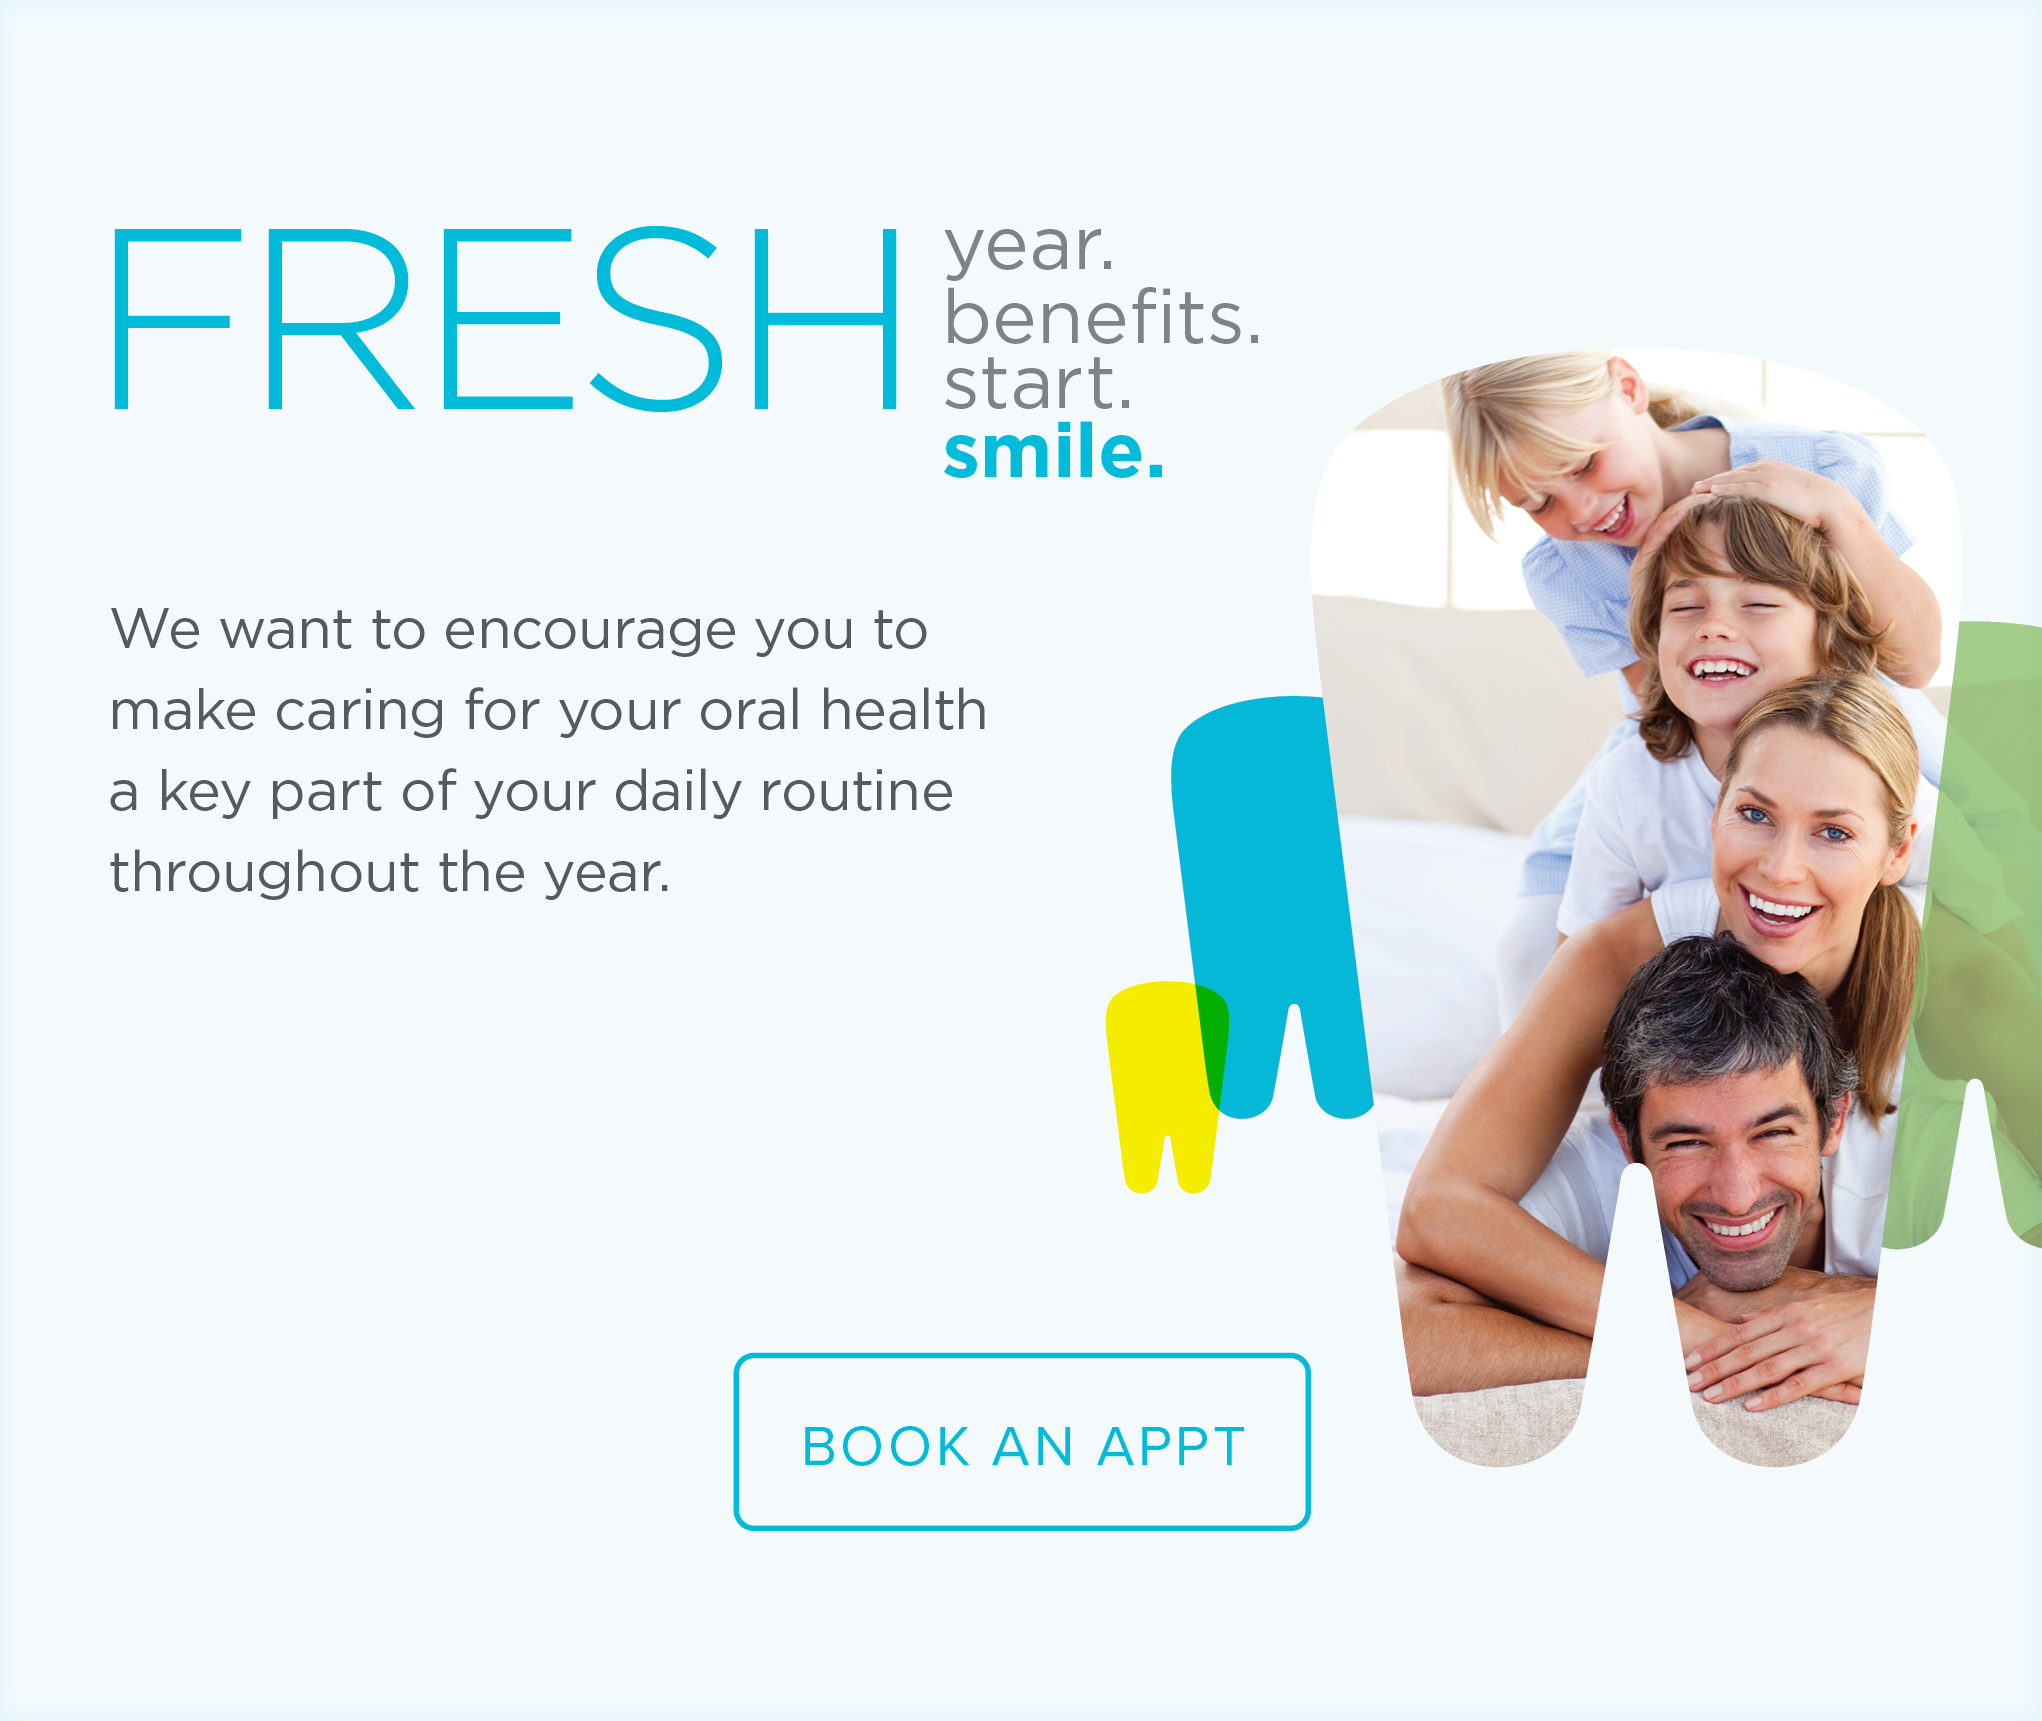 Fullerton Dental Group - Make the Most of Your Benefits